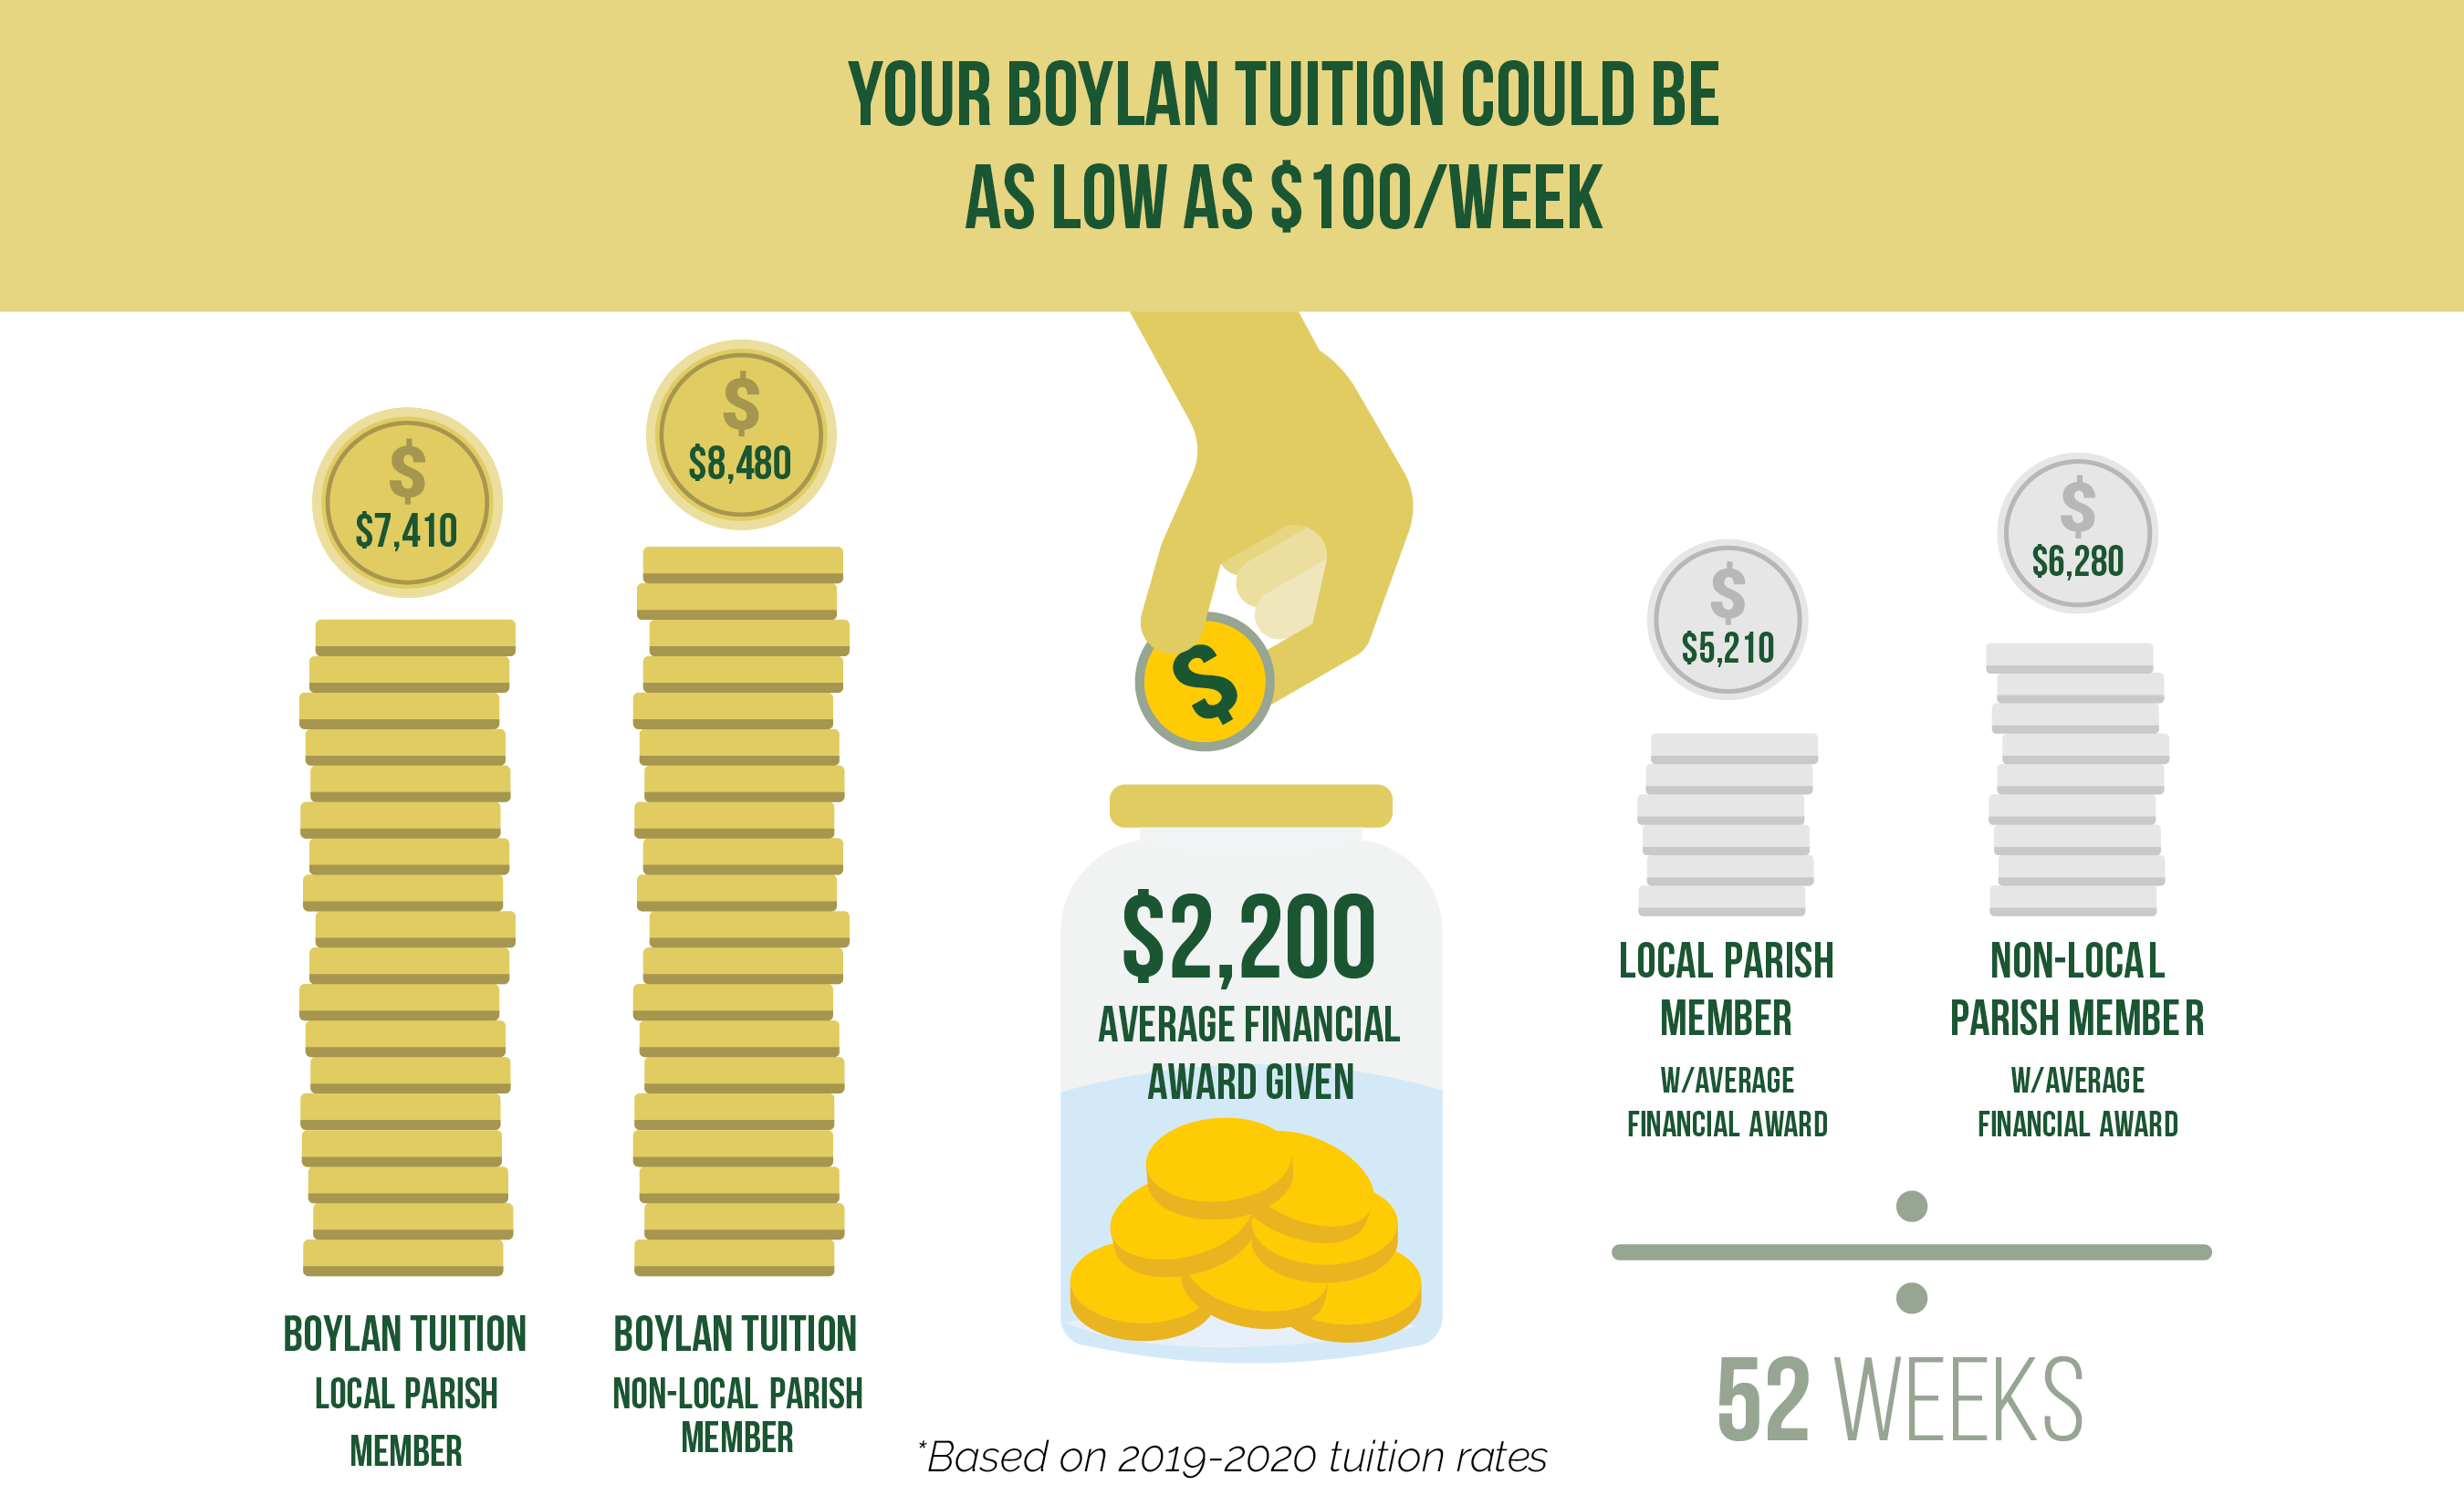 Your Boylan Tuition Could Be As Low As $100 A Week